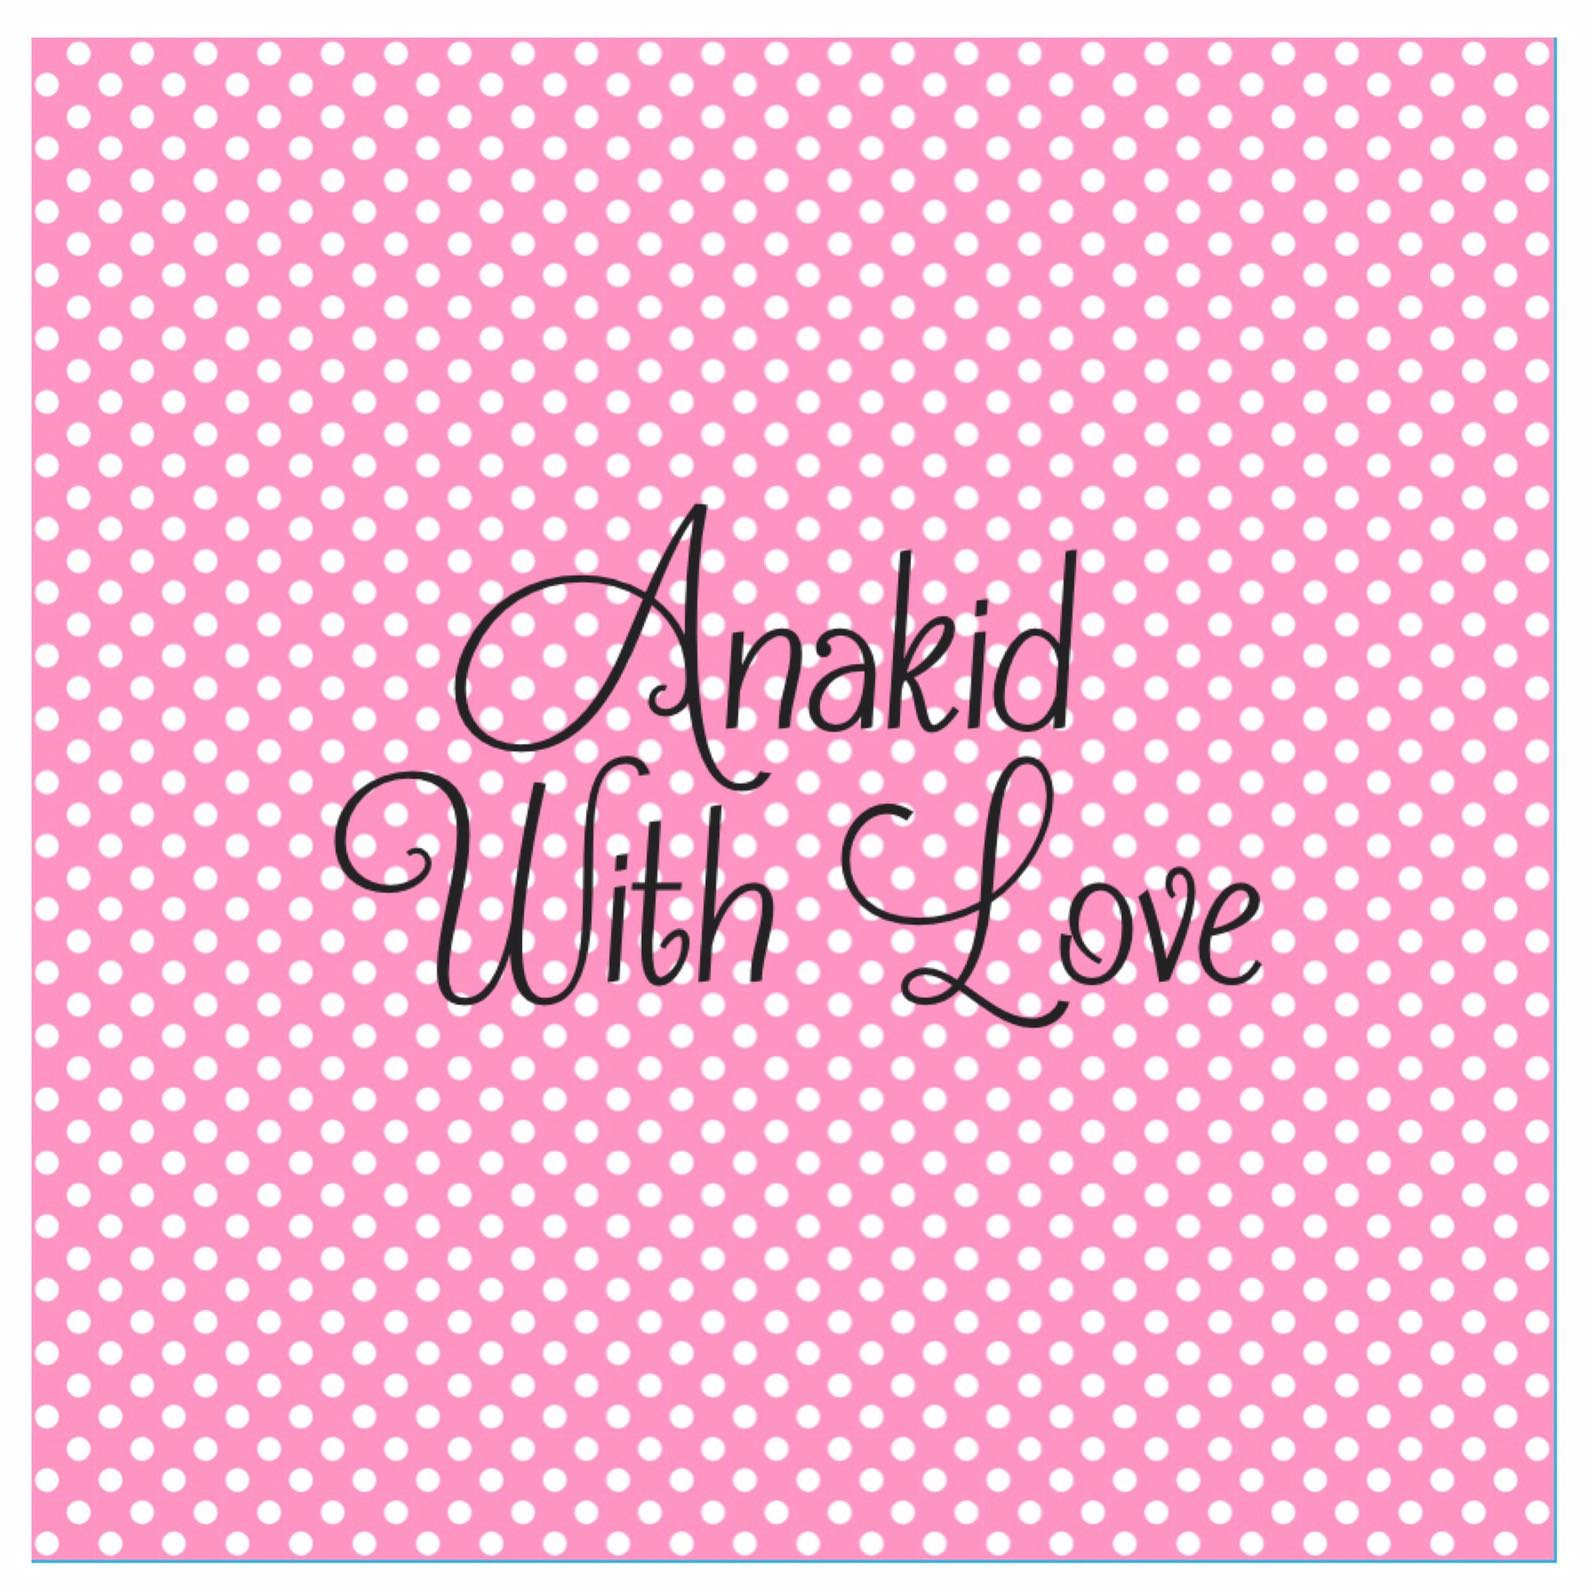 anakidwithlove